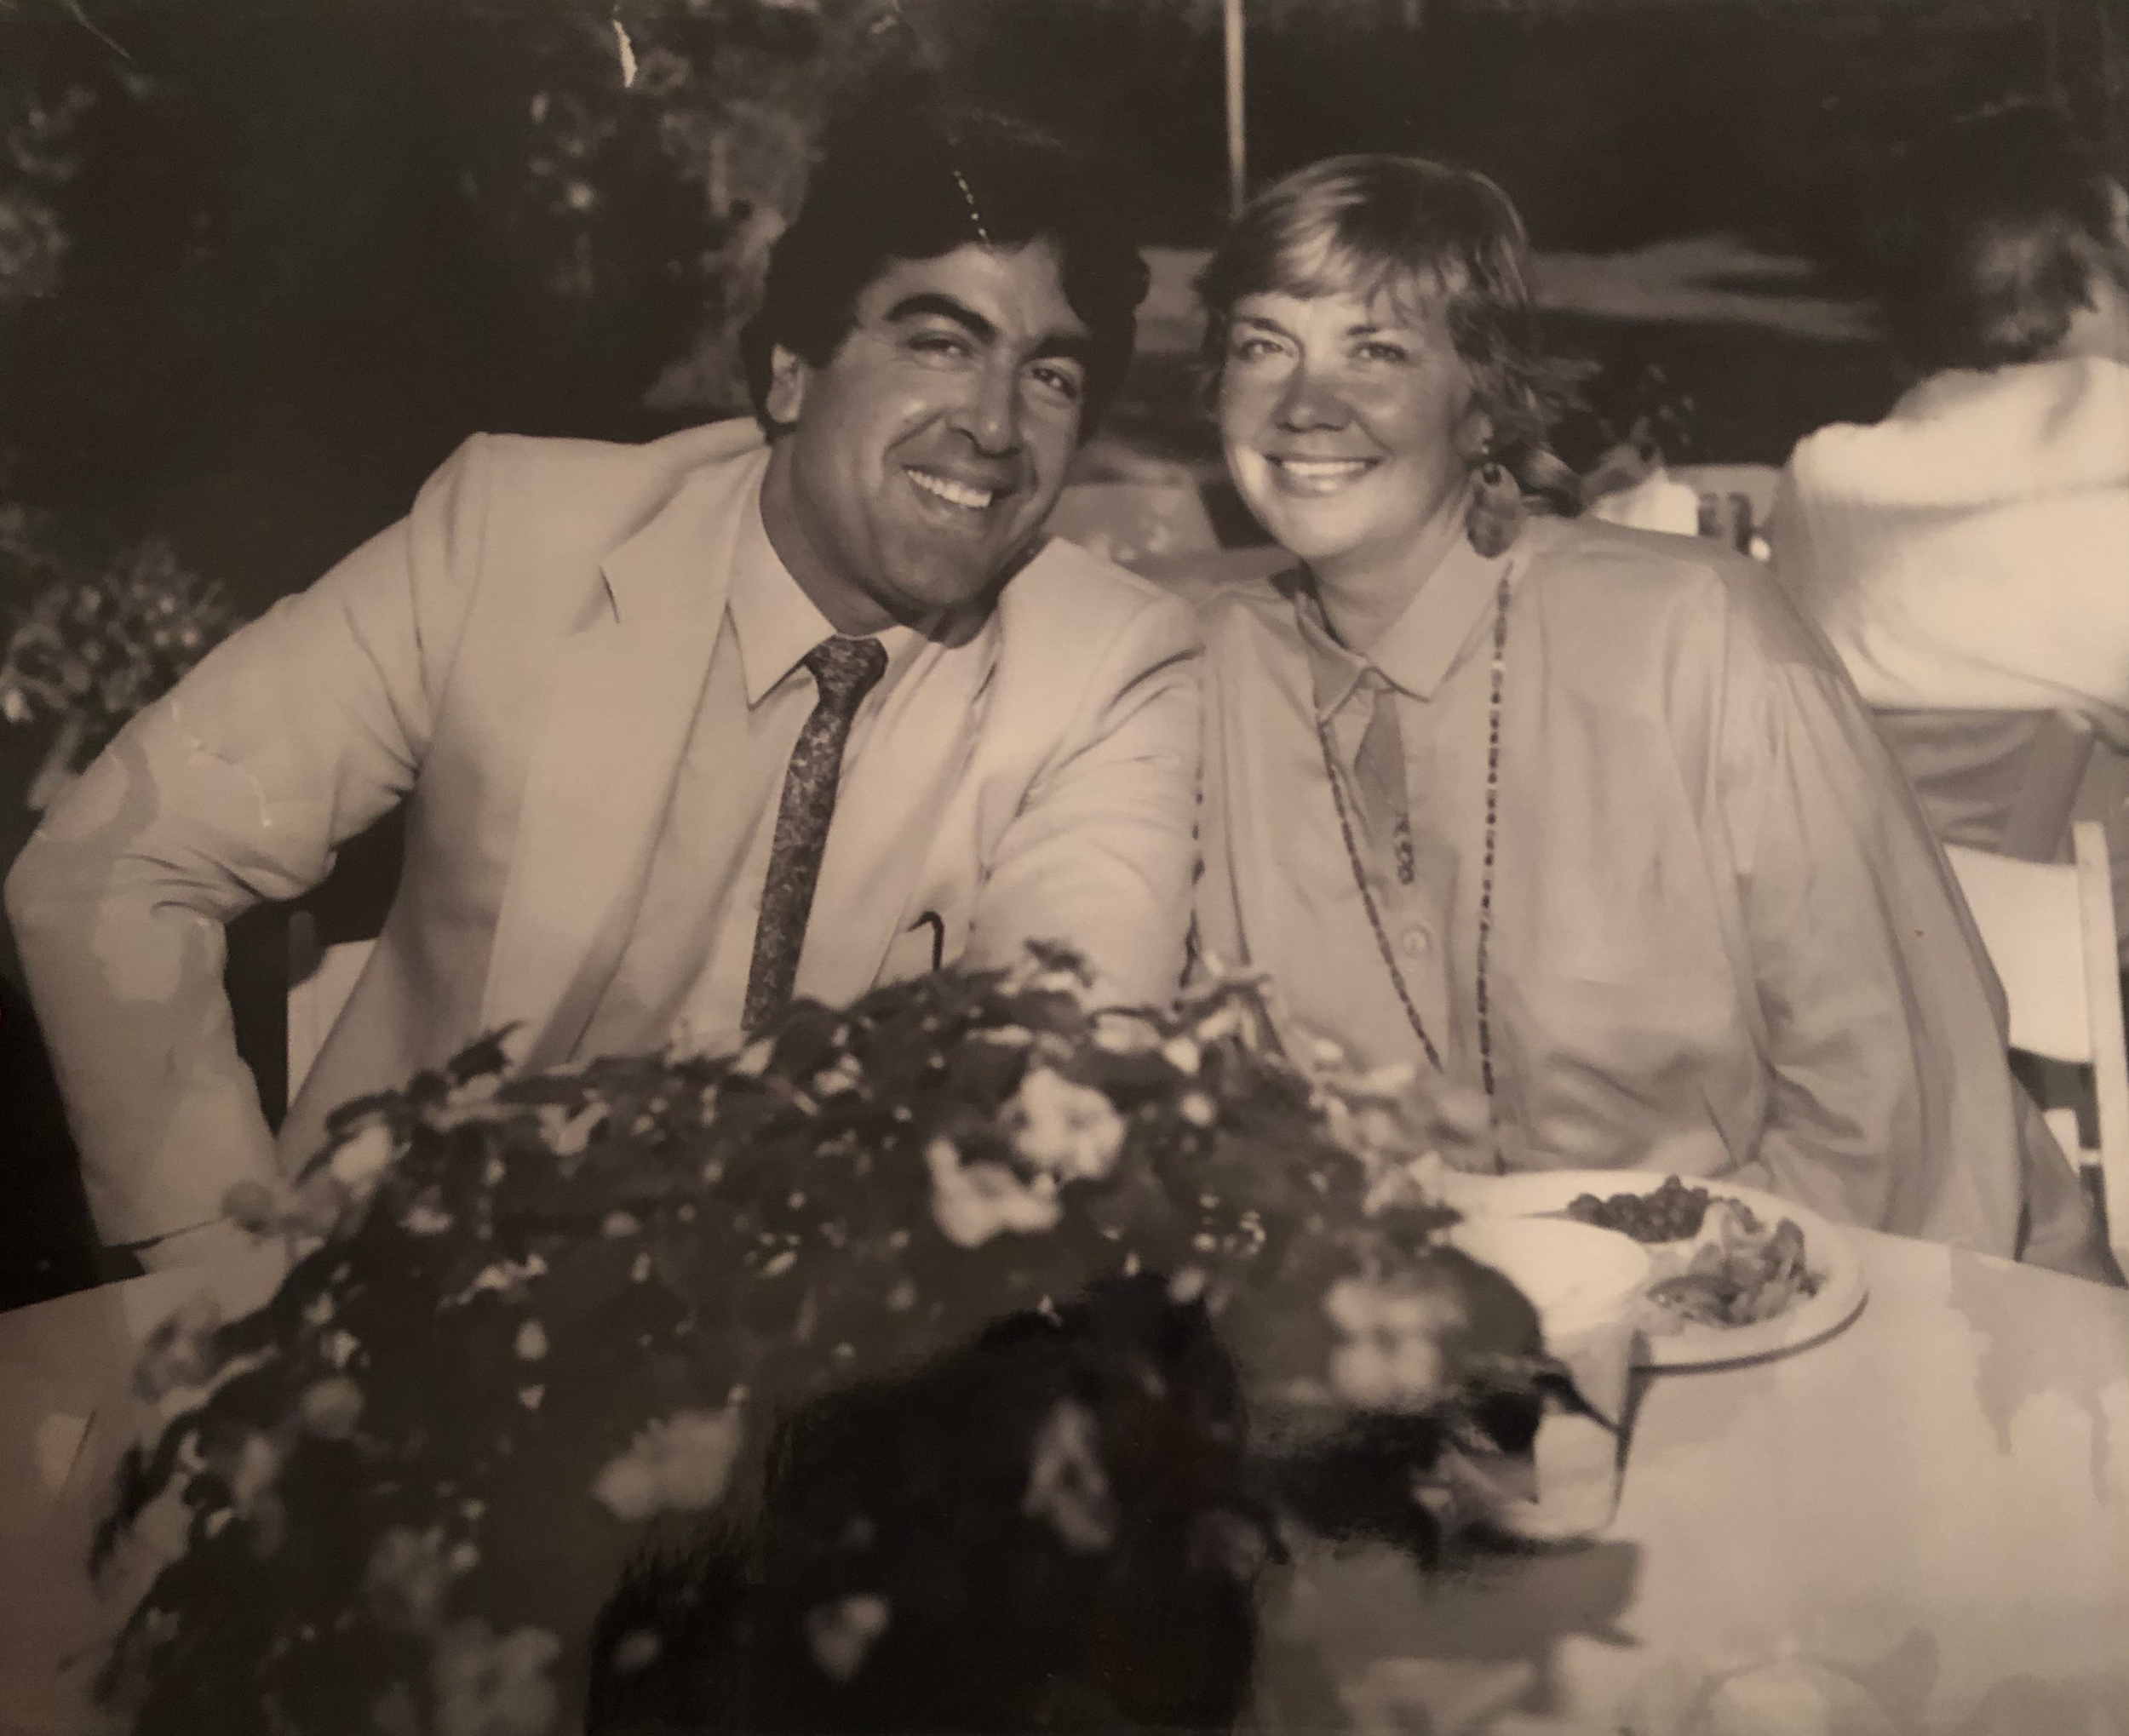 our story - The Open Hand Foundation was founded by Charles Khalil in memory of his wife Kaaren, whom he lost to Frontotemporal Dementia. Their five children are all active in the organization.